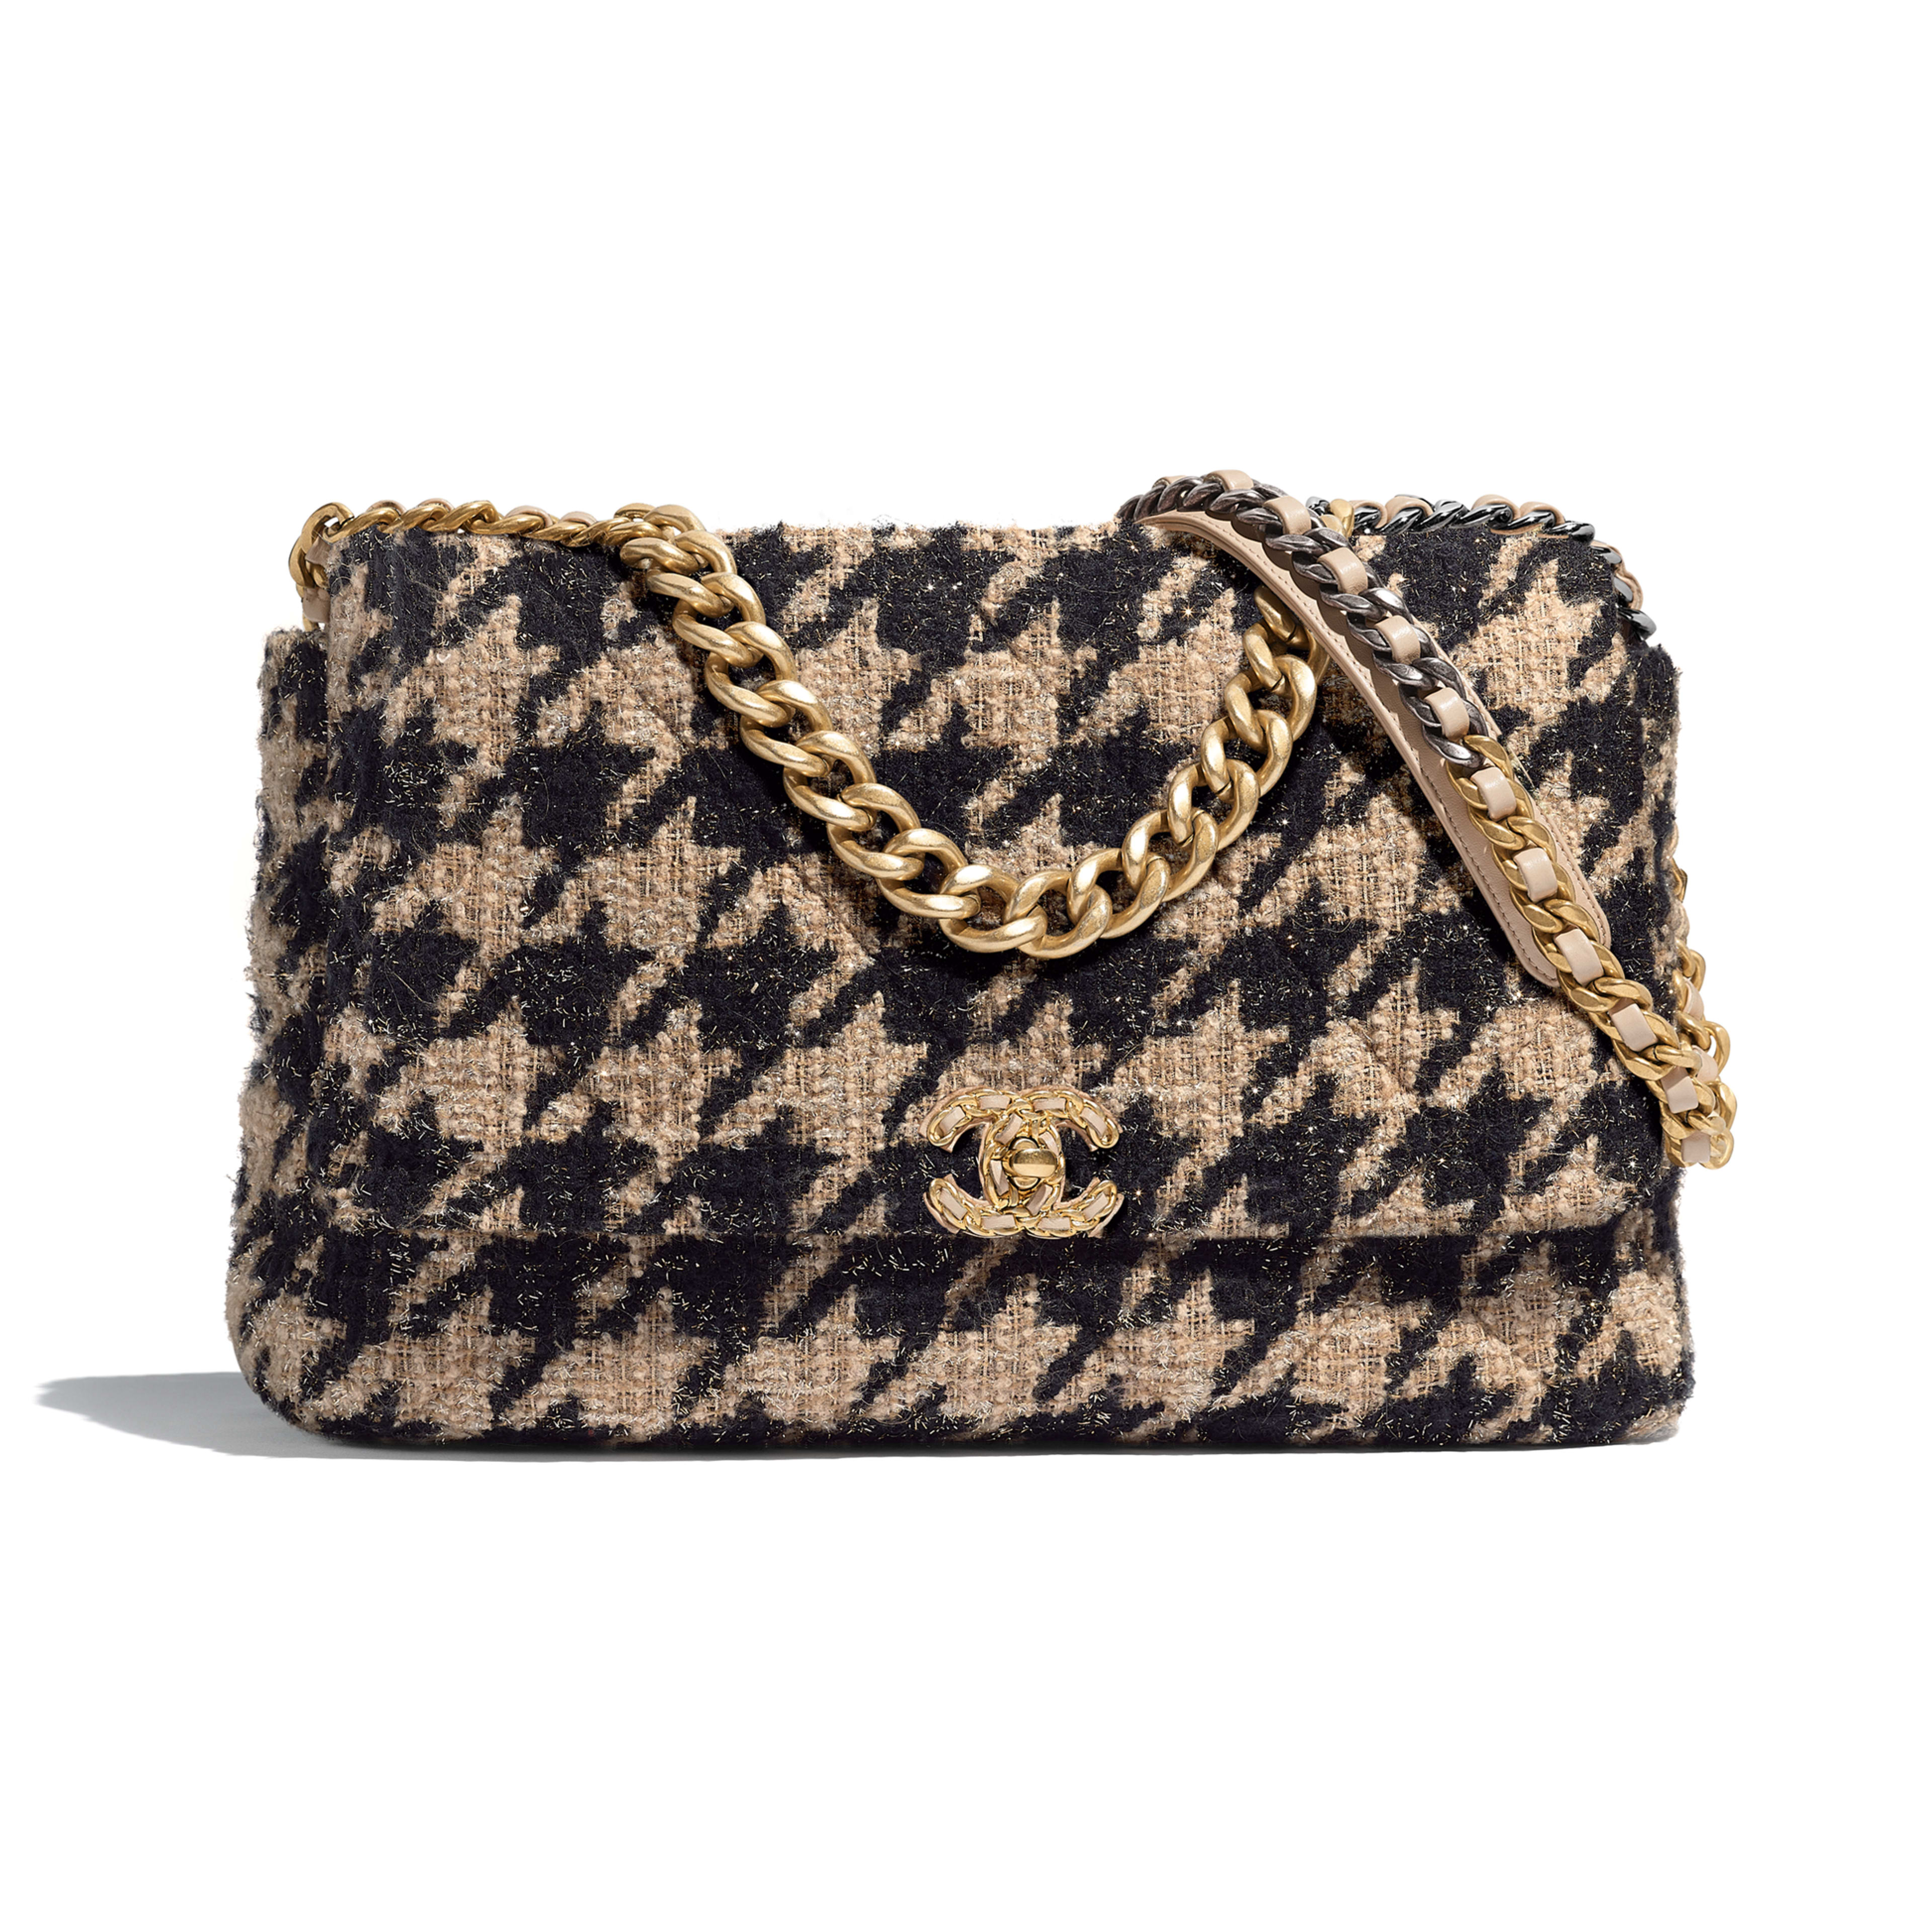 CHANEL 19 Maxi Flap Bag - Beige & Black - Tweed, Gold-Tone, Silver-Tone & Ruthenium-Finish Metal - Default view - see full sized version